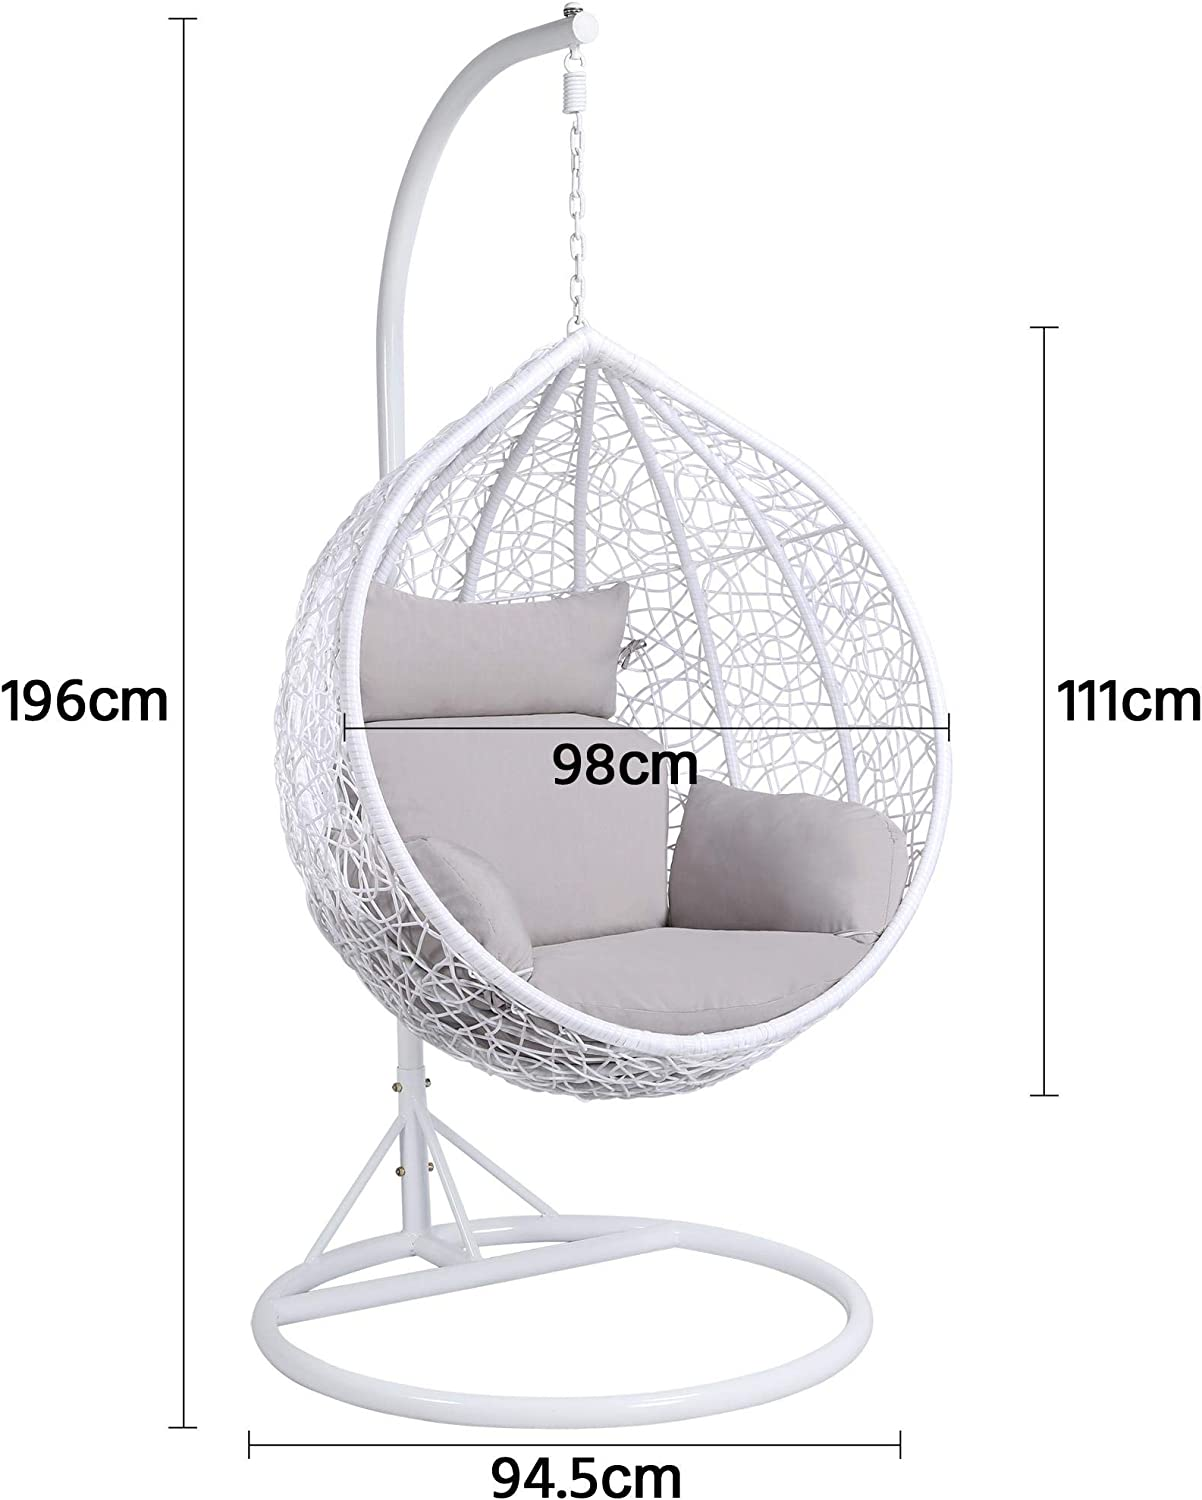 Mid Century Rattan Chair, Yaheetech Rattan Swing Chair Hanging Garden Patio Indoor Outdoor Egg Chair With Stand Cushion And Cover White 150kg Capacity Amazon Co Uk Garden Outdoors